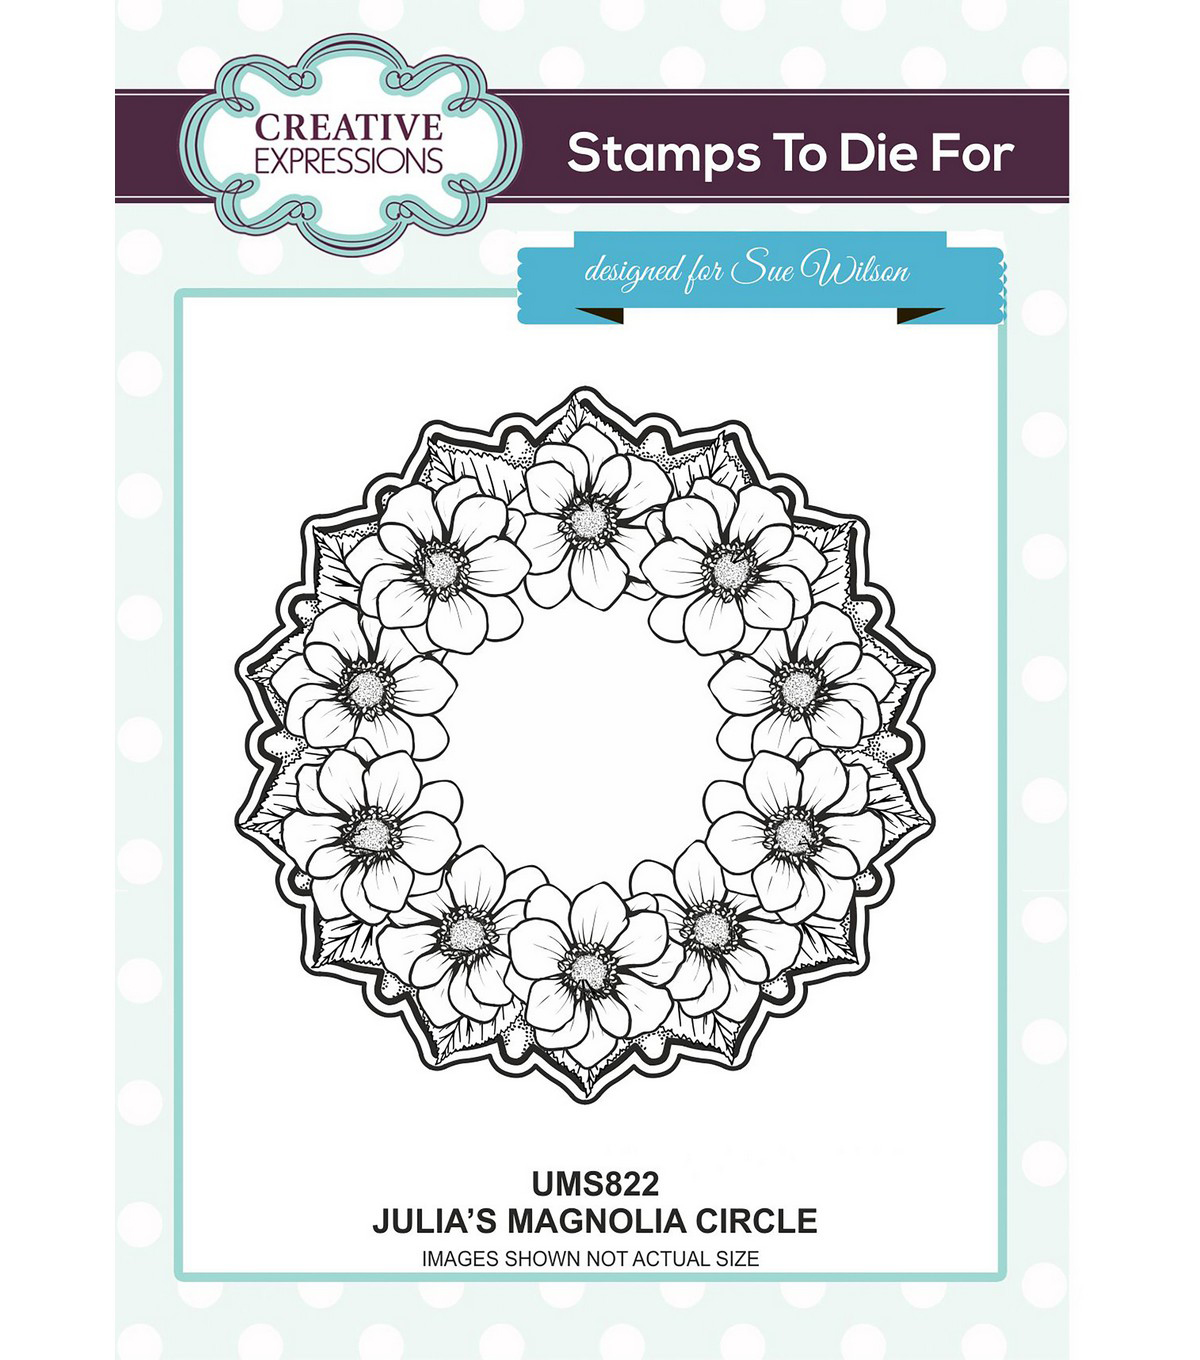 Creative Expressions Stamps To Die For Stamp-Julia\u0027s Magnolia Circle